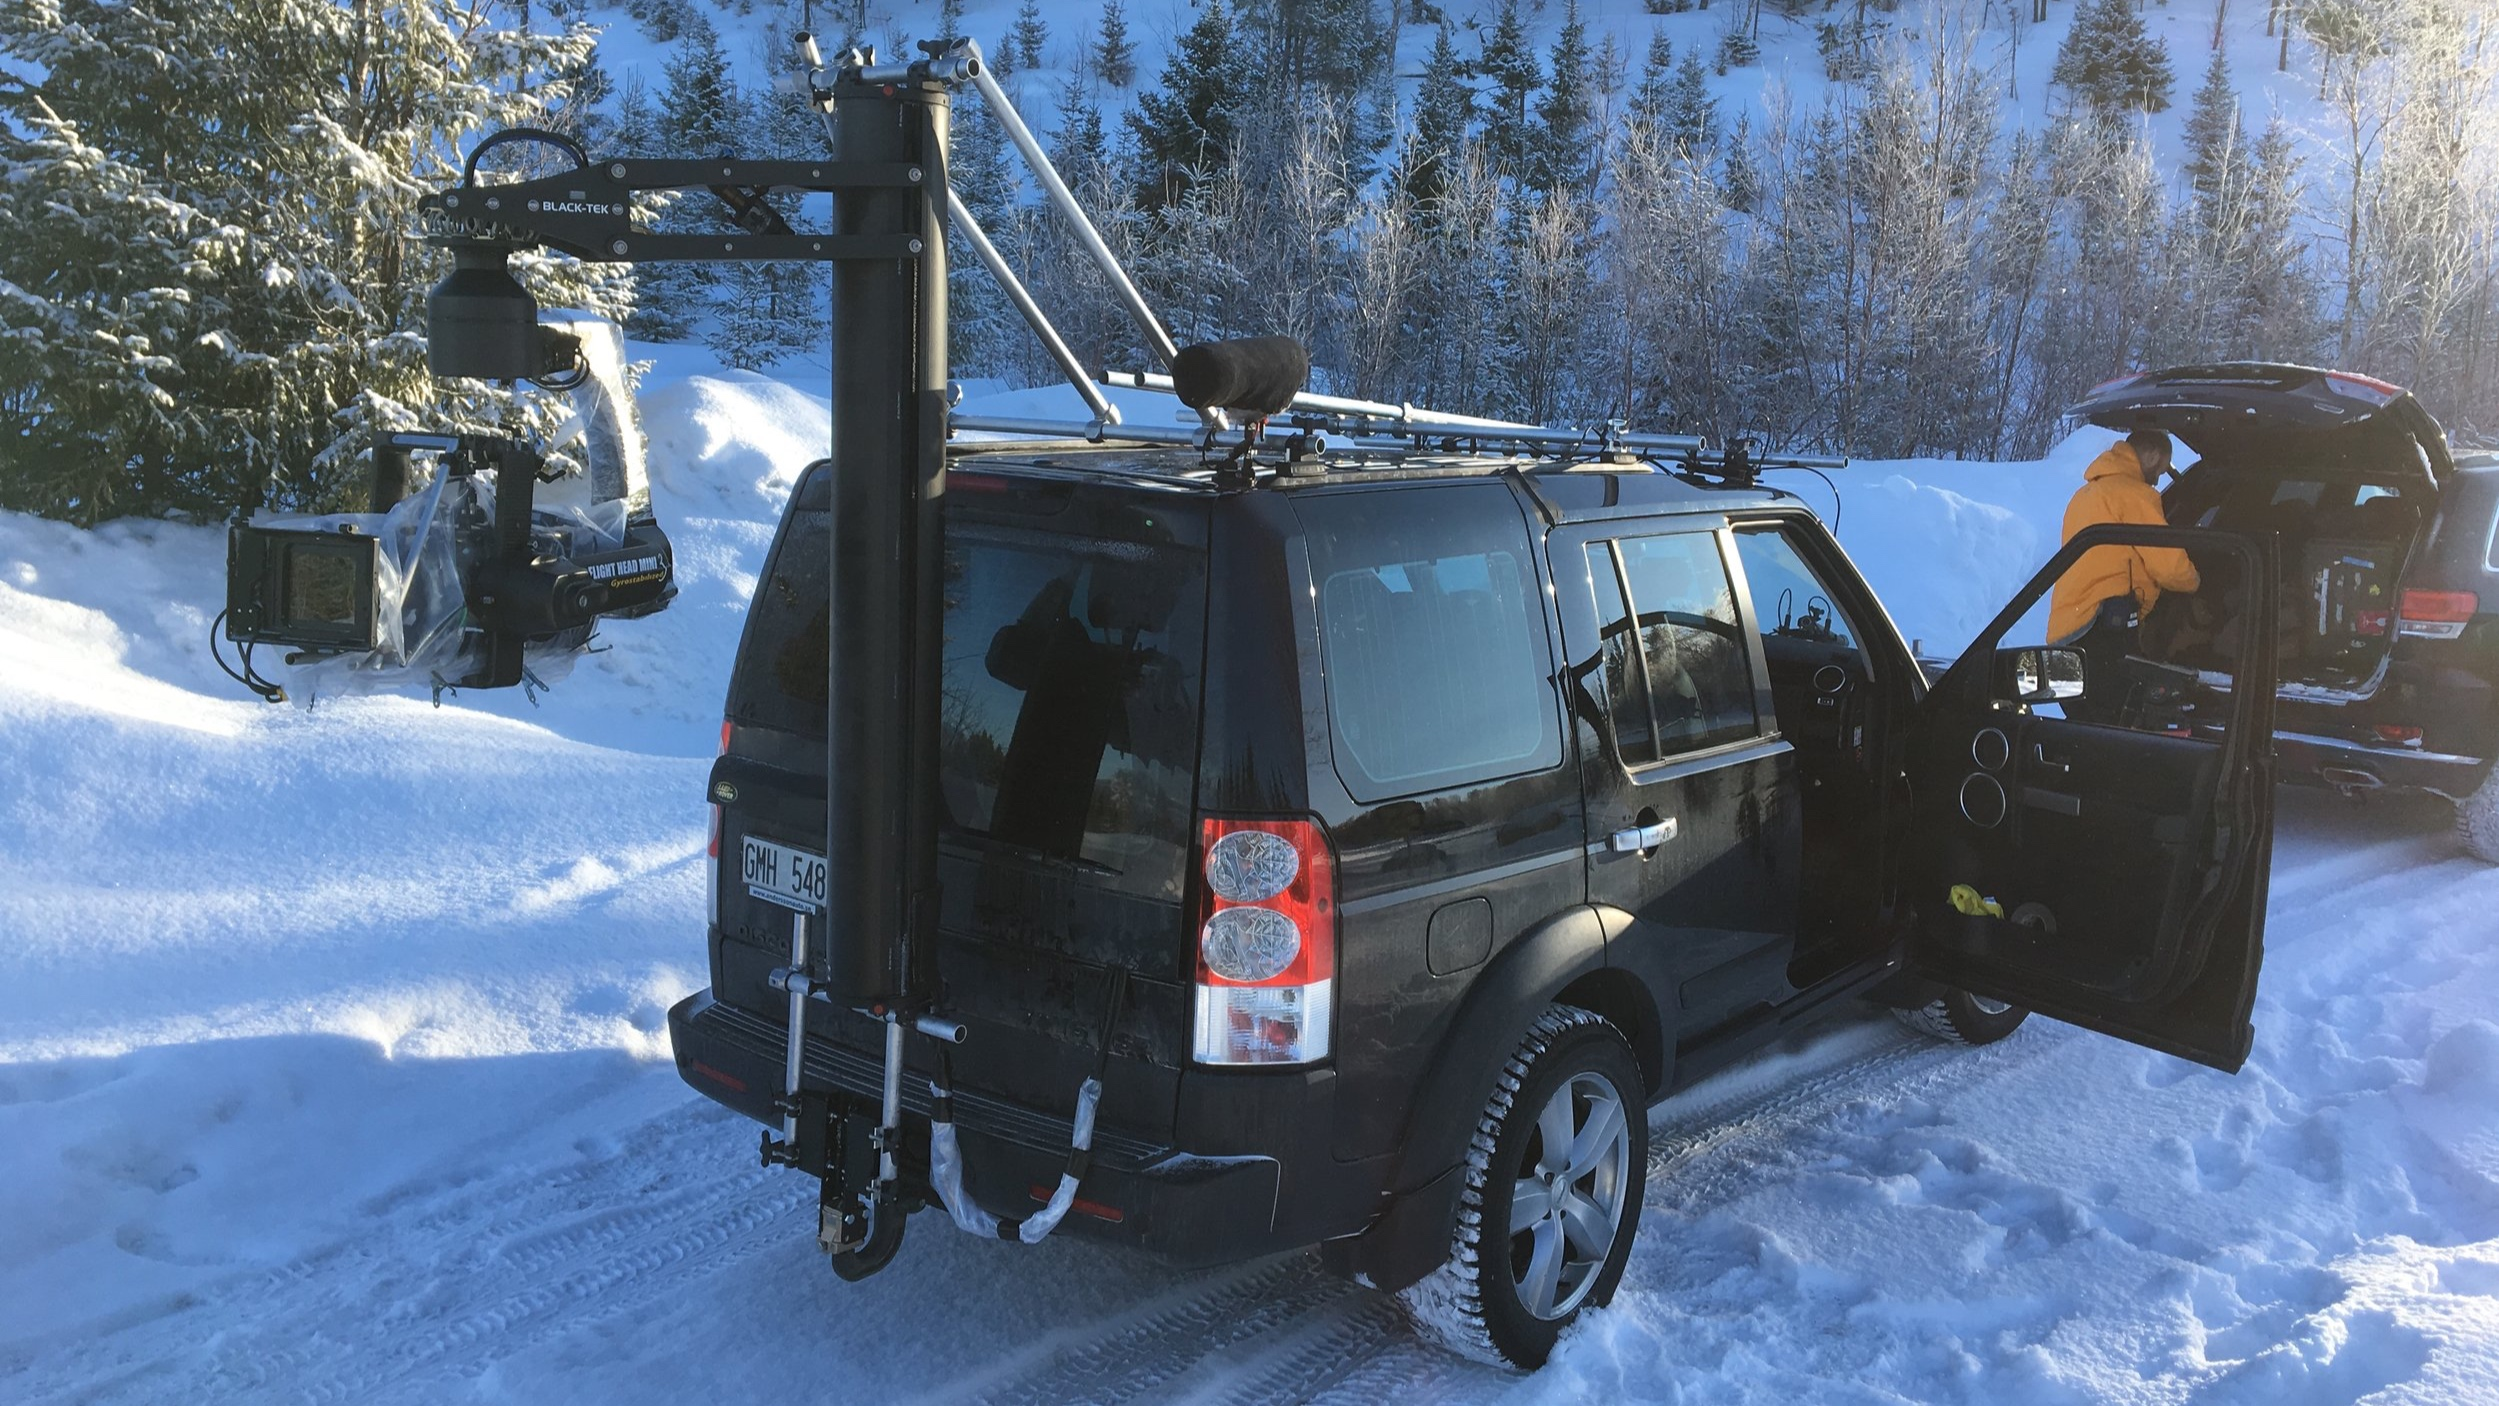 Flighthead Mini3, Black-Tek Motorised Tower, Land-Rover Discovery